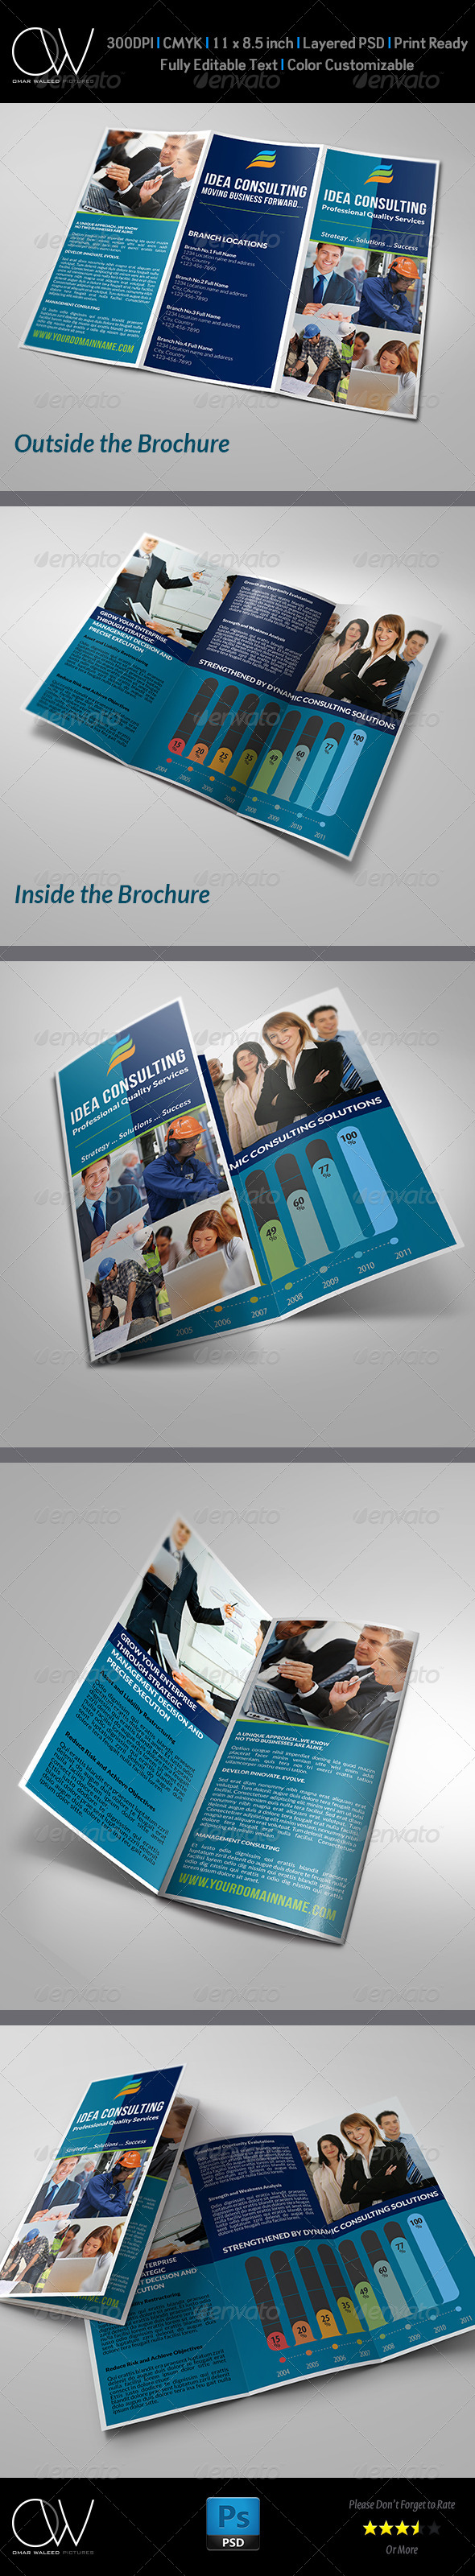 GraphicRiver Corporate Business Tri-Fold Brochure Vol.2 6093429